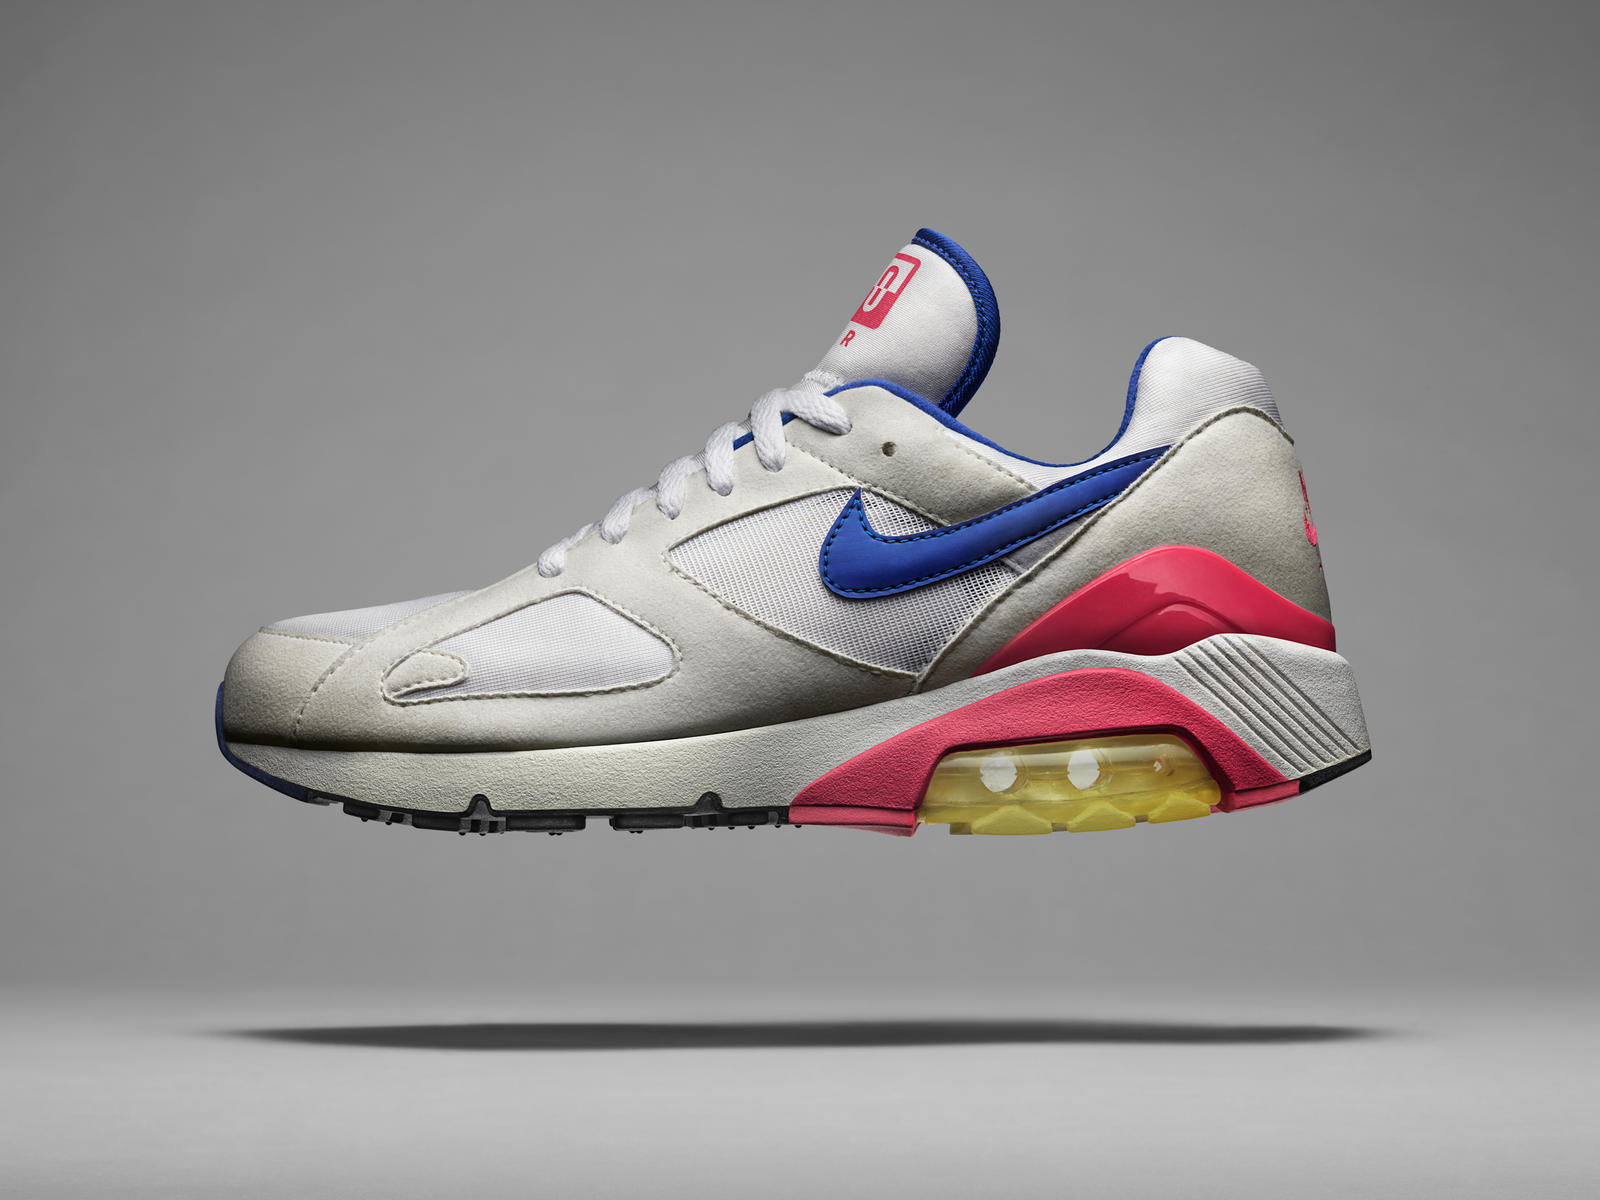 ... spain masters of max the air max icons nike news e4019 51f6f 3552e9f56